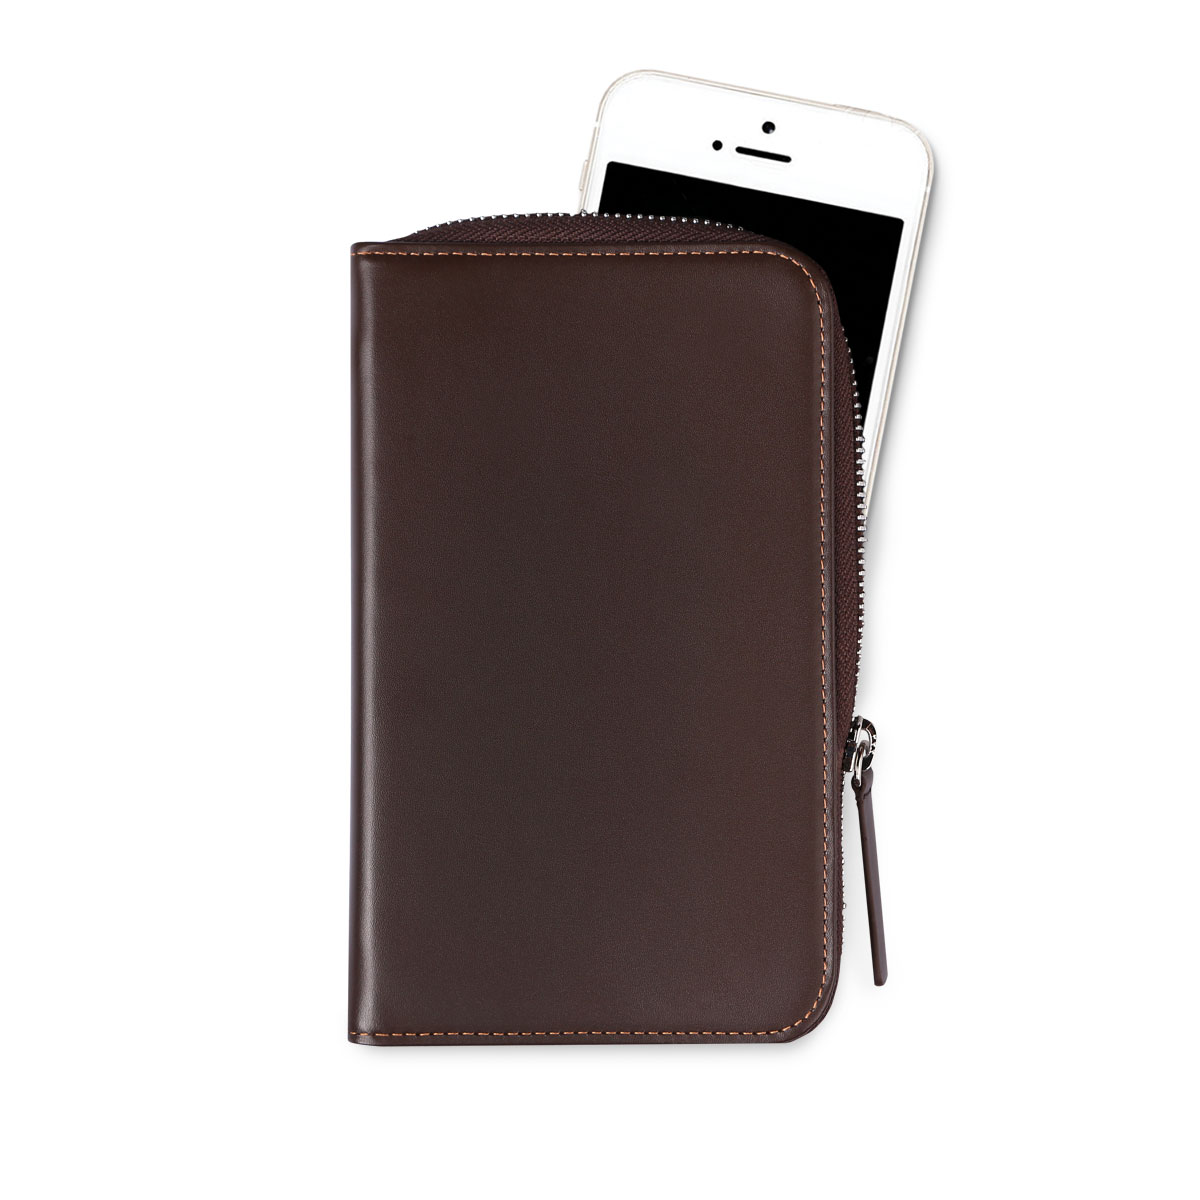 Daily Phone Pocket Plus Dark Brown